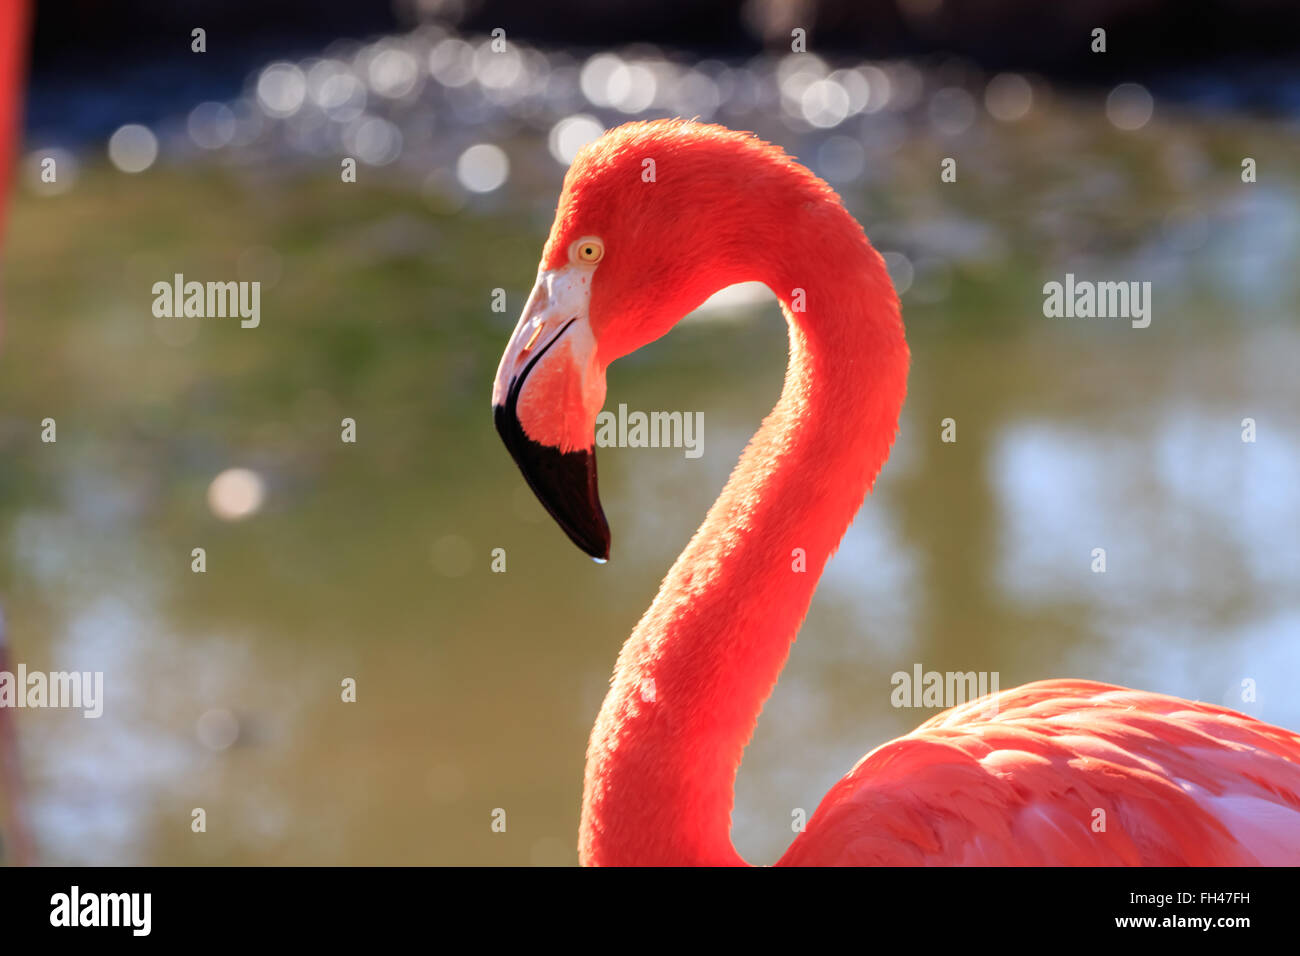 A graceful flamingo portrait - Stock Image